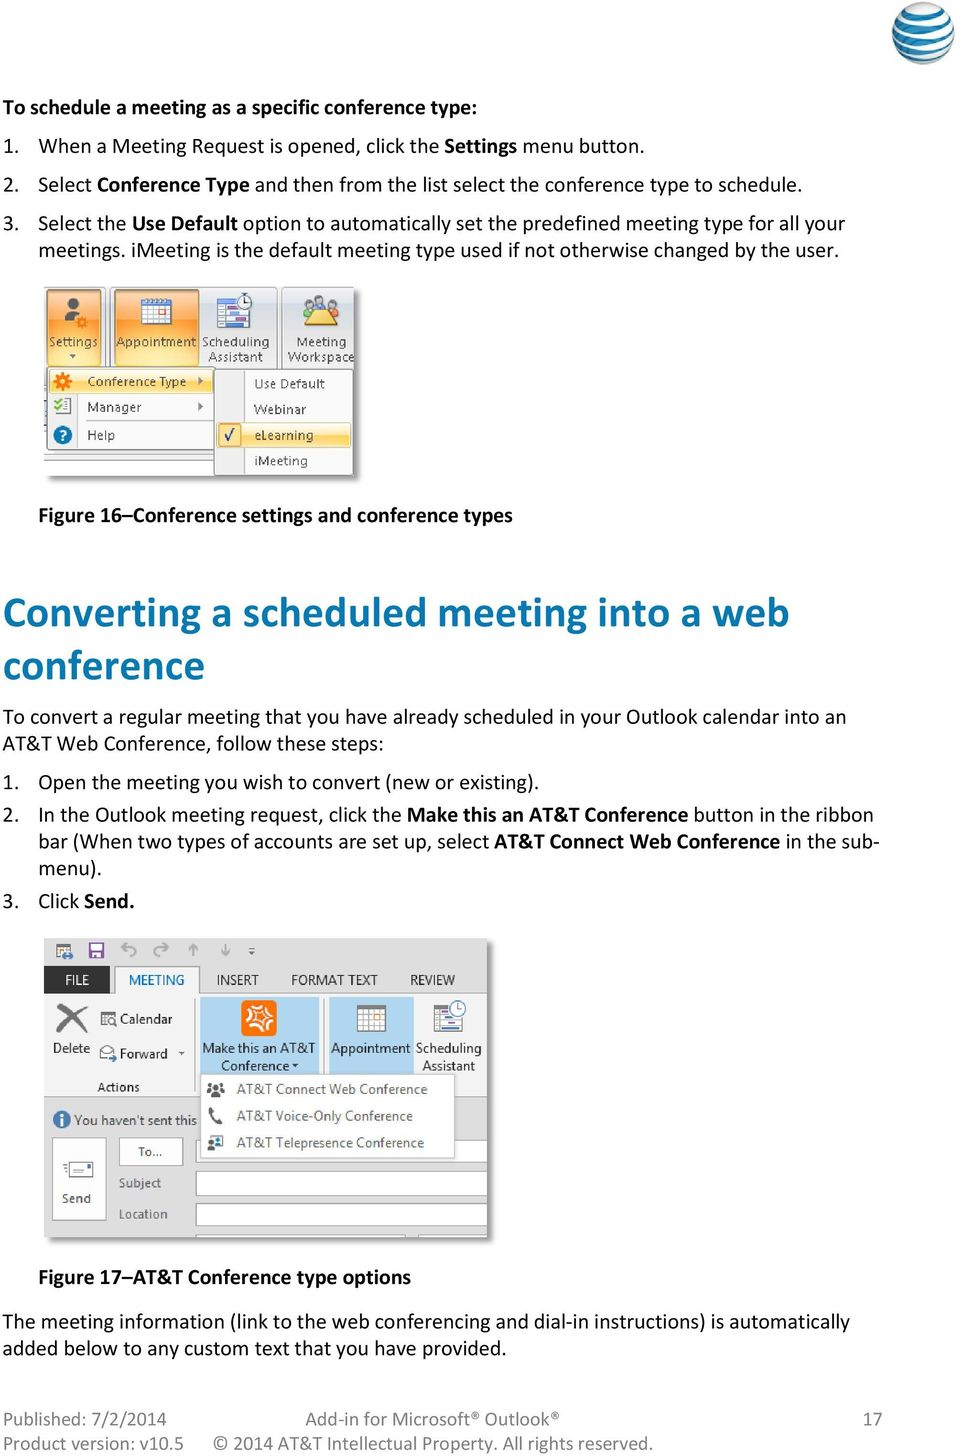 imeeting is the default meeting type used if not otherwise changed by the user.